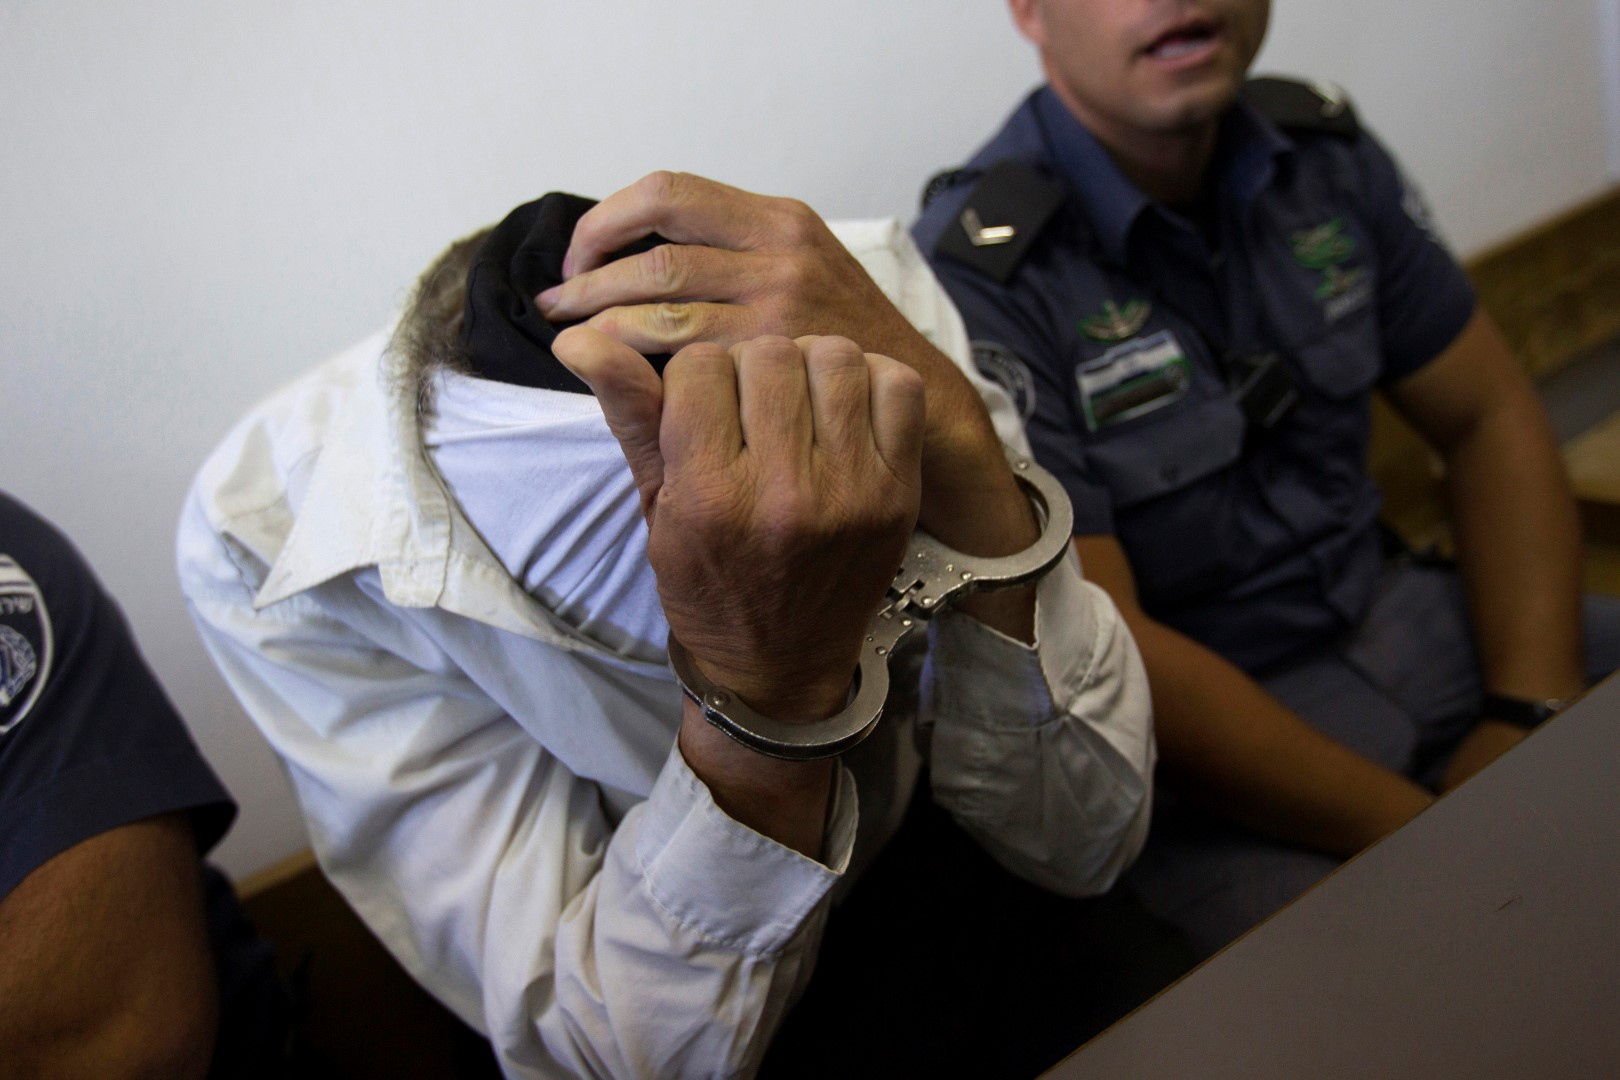 A man belonging to the fringe ultra-Orthodox Jewish group Neturei Karta covers his face at the Jerusalem District Court August 5, 2013. The man, an Israeli citizen, was charged last week with trying to spy for Iran. The Neturei Karta faction, a movement within the anti-Zionist bloc, believes a Jewish state should exist only after the Messiah comes. REUTERS/Ronen Zvulun (JERUSALEM - Tags: POLITICS CRIME LAW) - RTX12ASQ